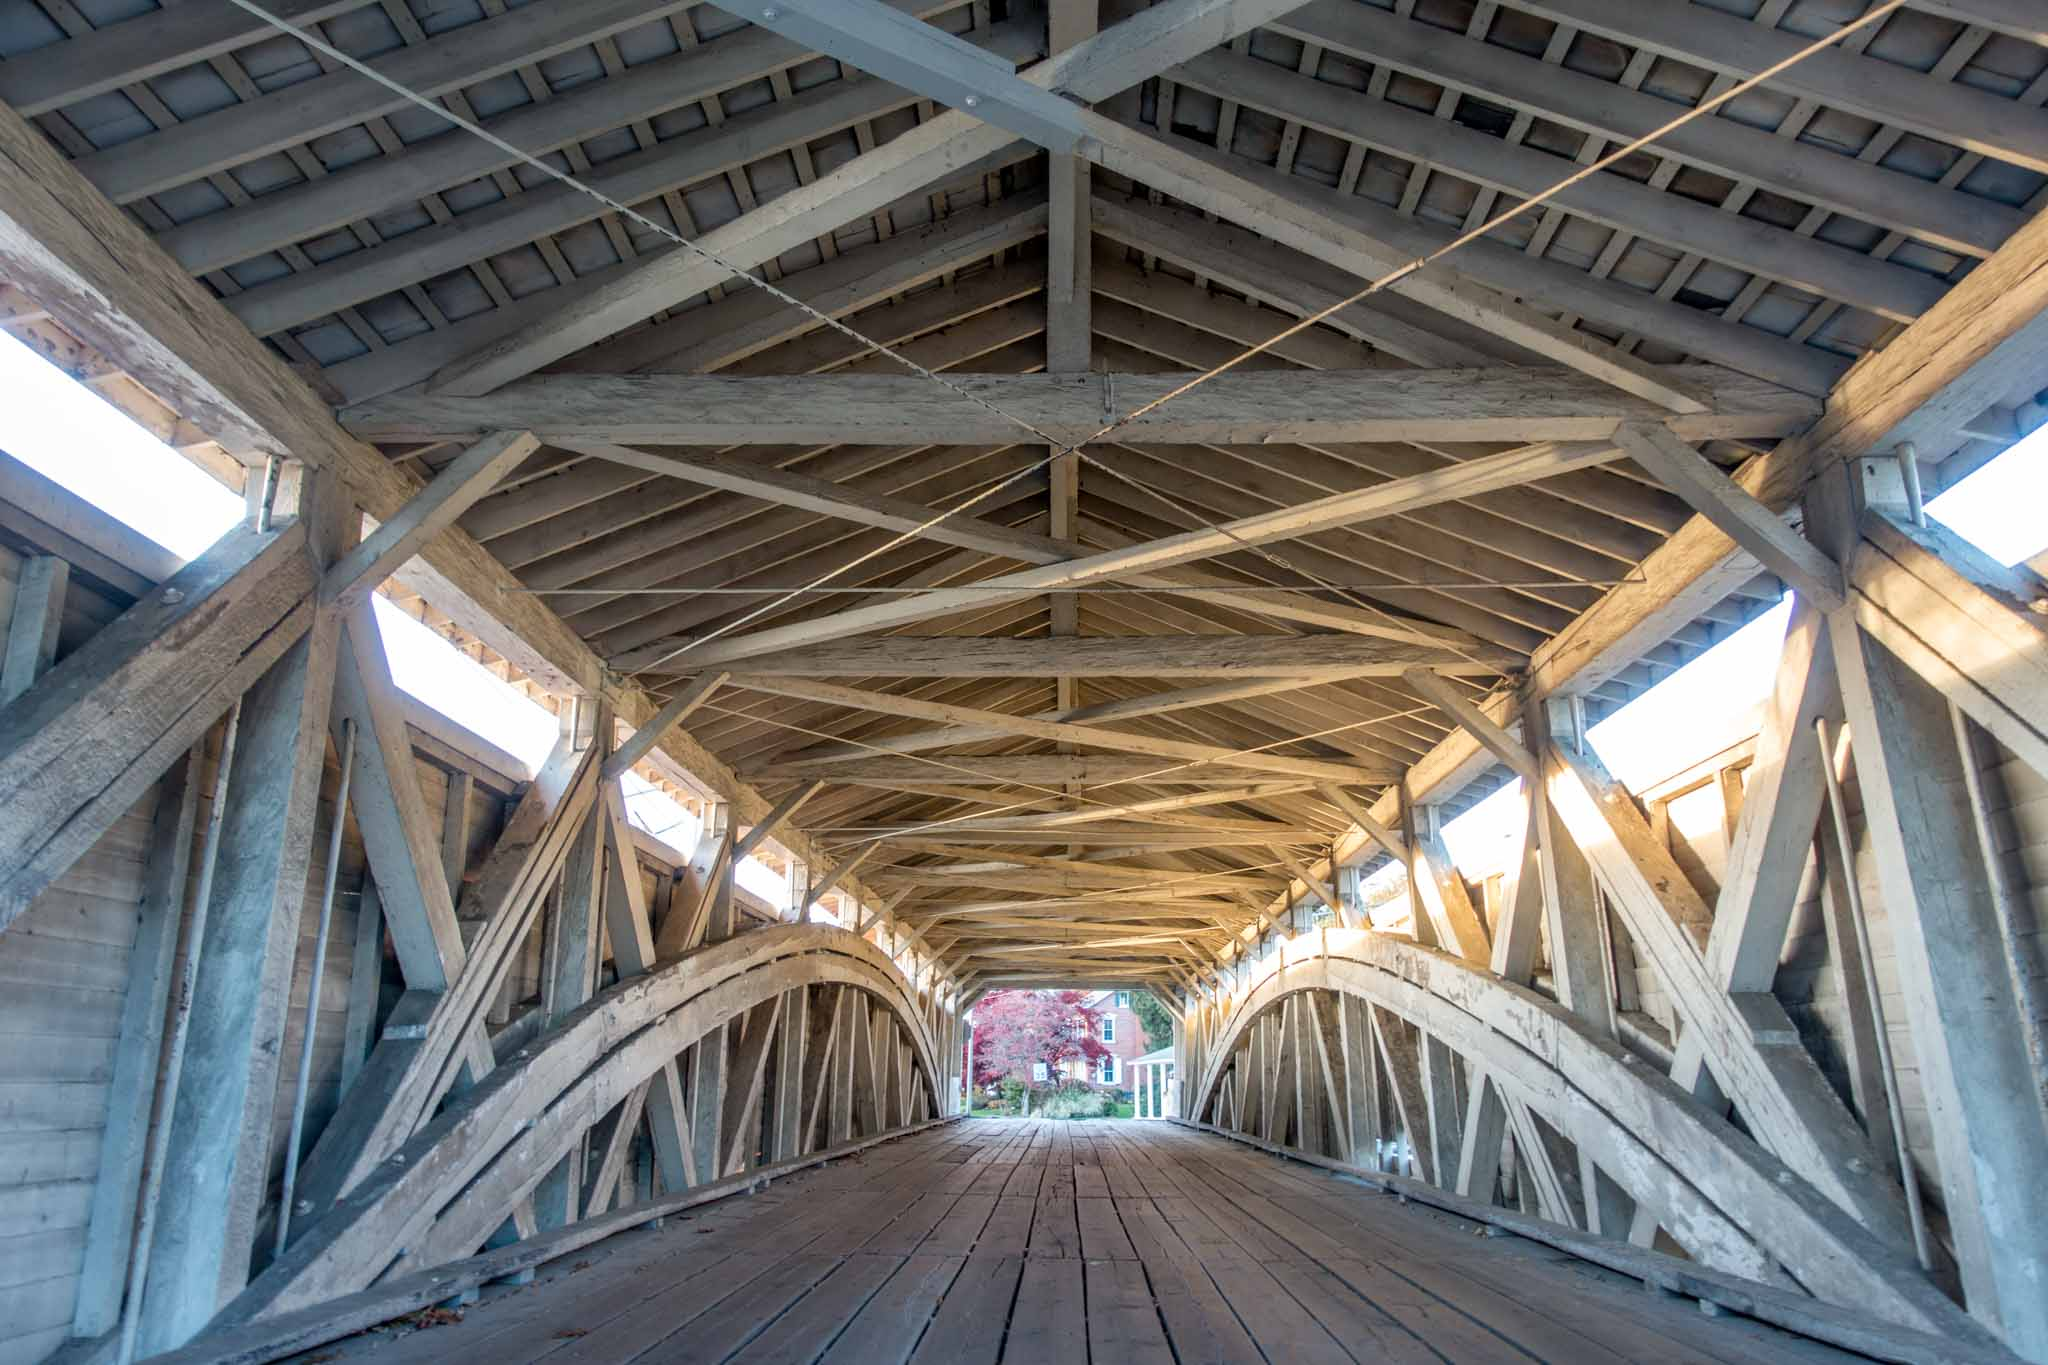 Wooden interior of a covered bridge